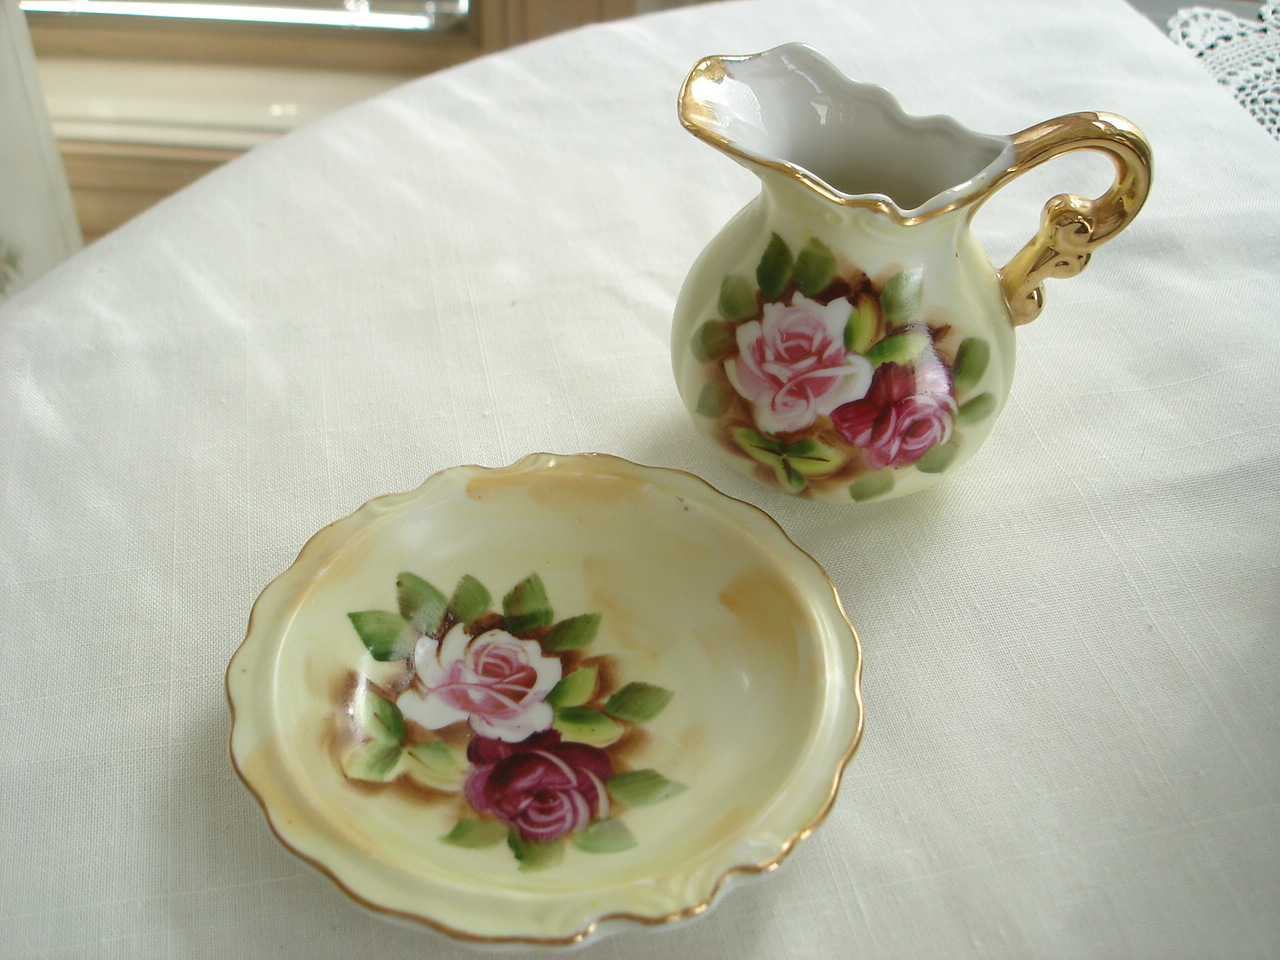 Vintage Norcrest Miniature Porcelain Bowl, Pitcher, Roses, Gold Trim